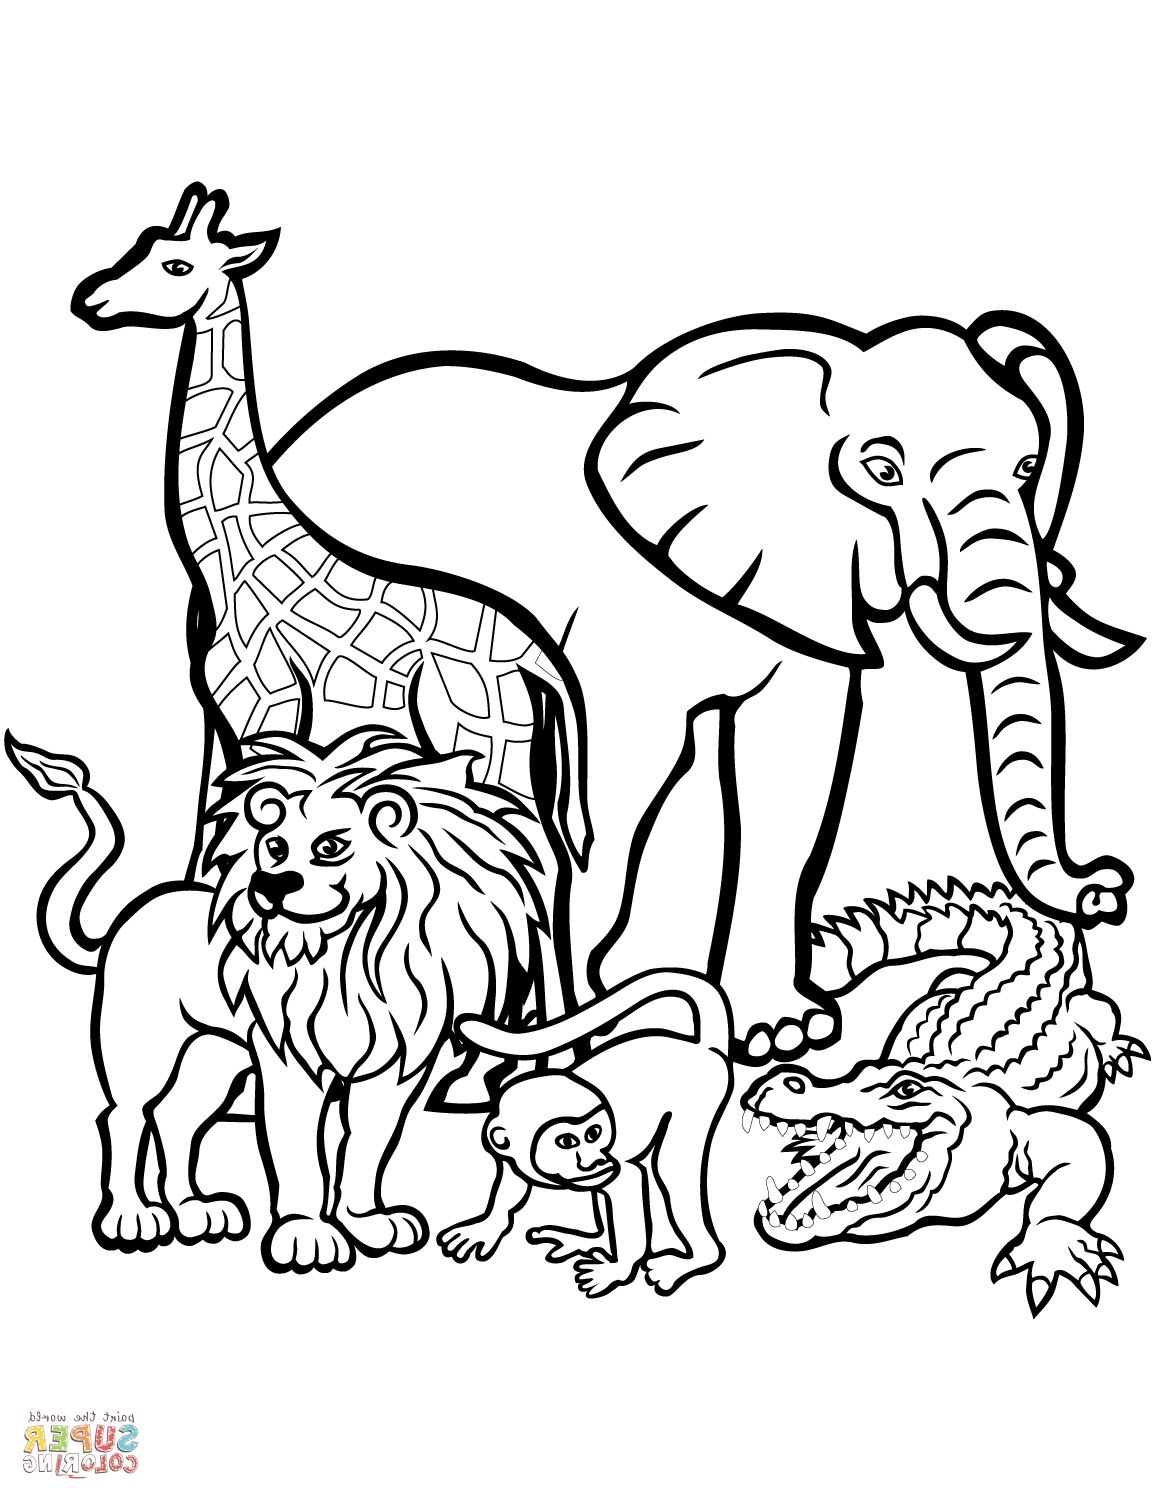 Animals Coloring Pages Zoo Coloring Pages Zoo Animal Coloring Pages Animal Coloring Pages